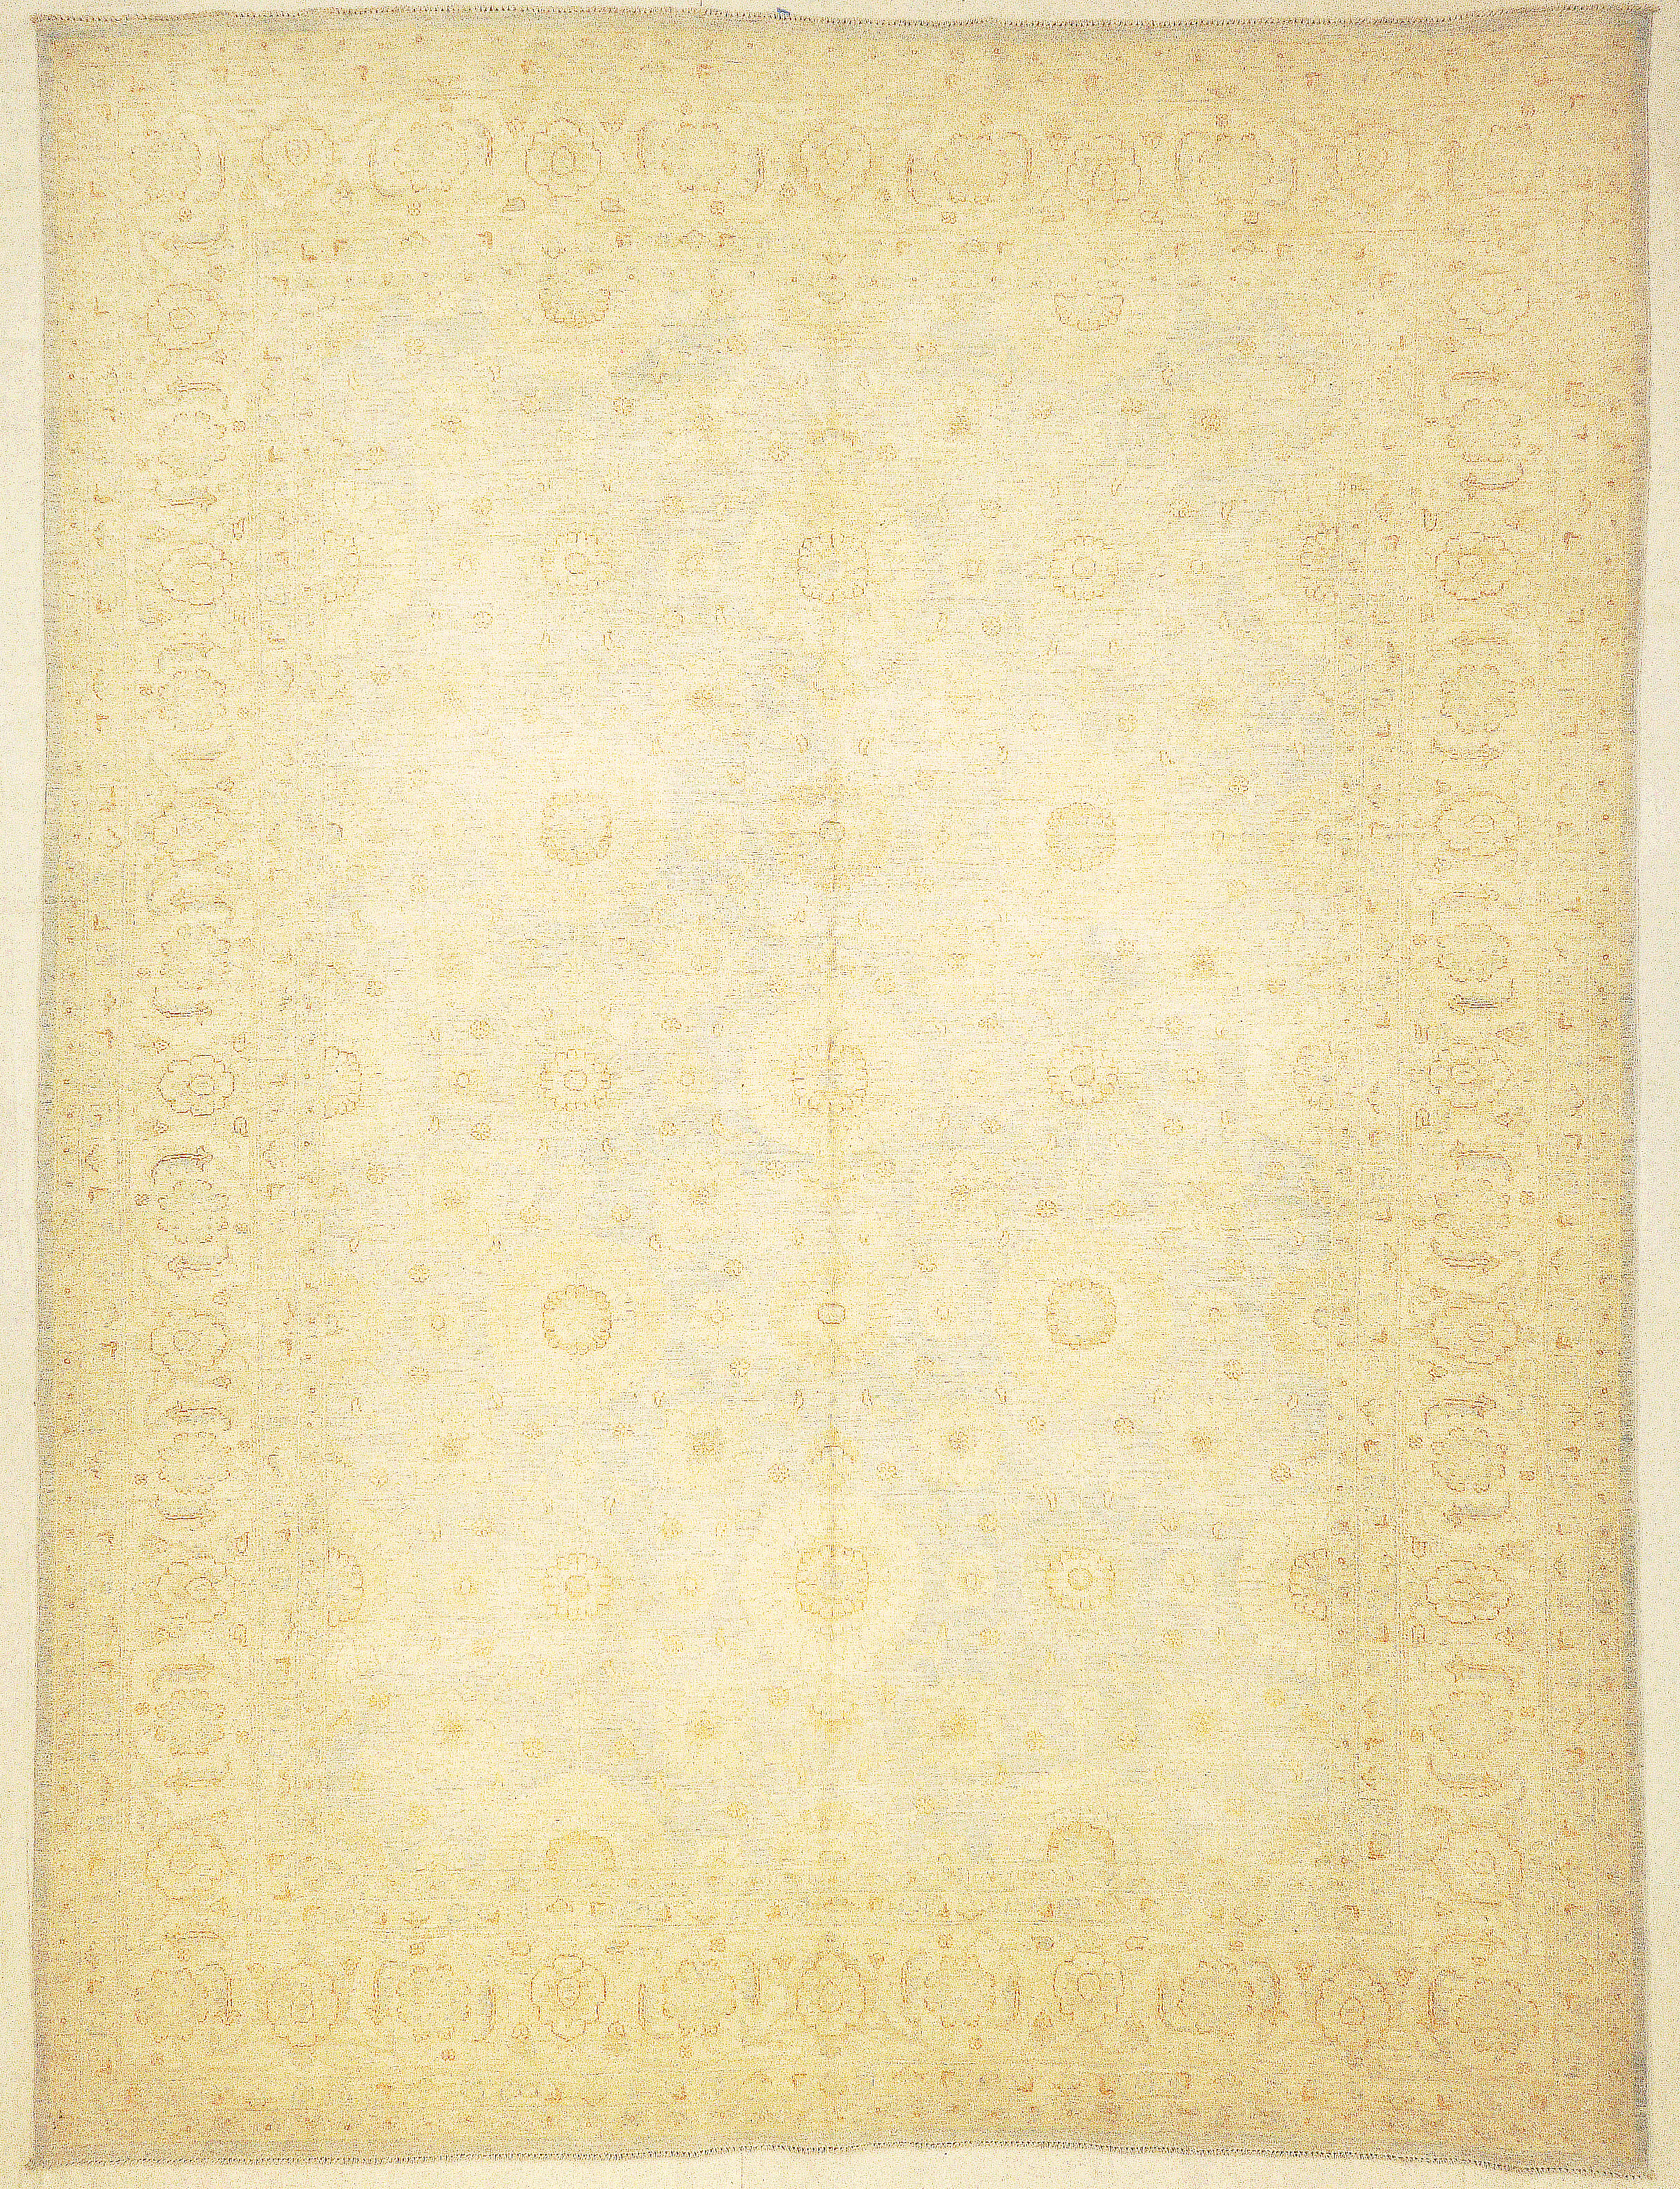 Finest Ziegler Oushak 30292. A piece of genuine woven authentic carpet art sold by the Santa Barbara Design Center, Rugs and More.